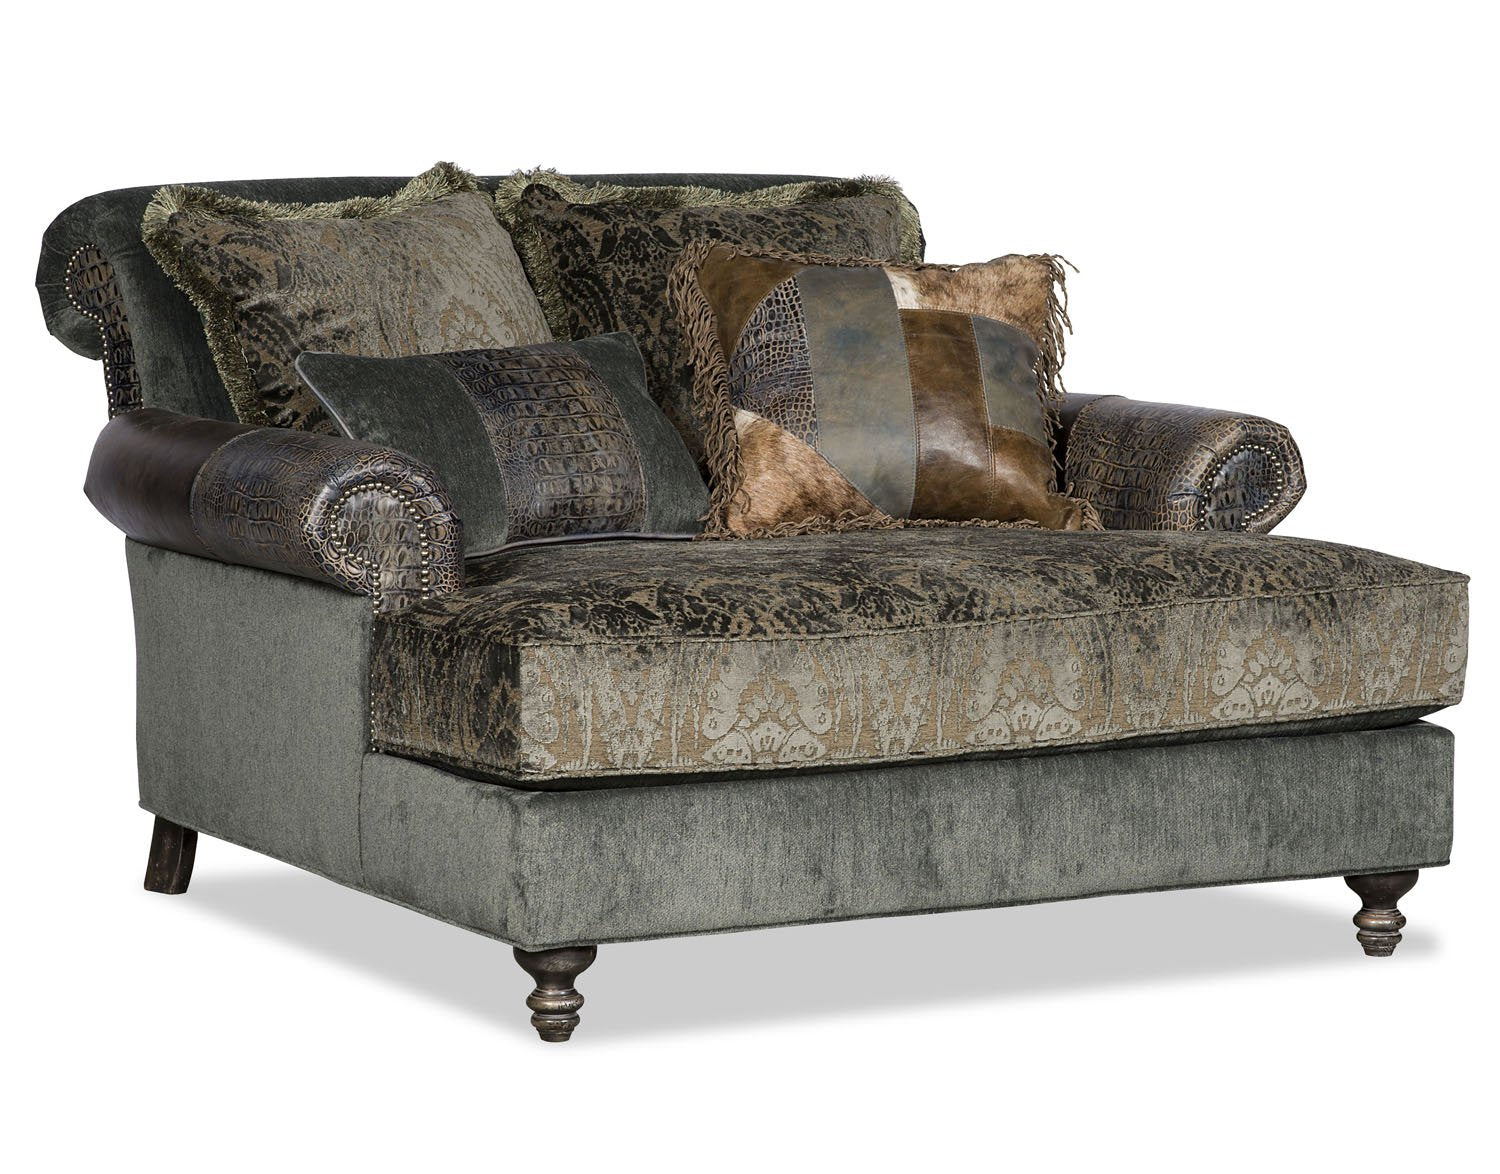 Mackenzie Chaise - Sage with Cowhide